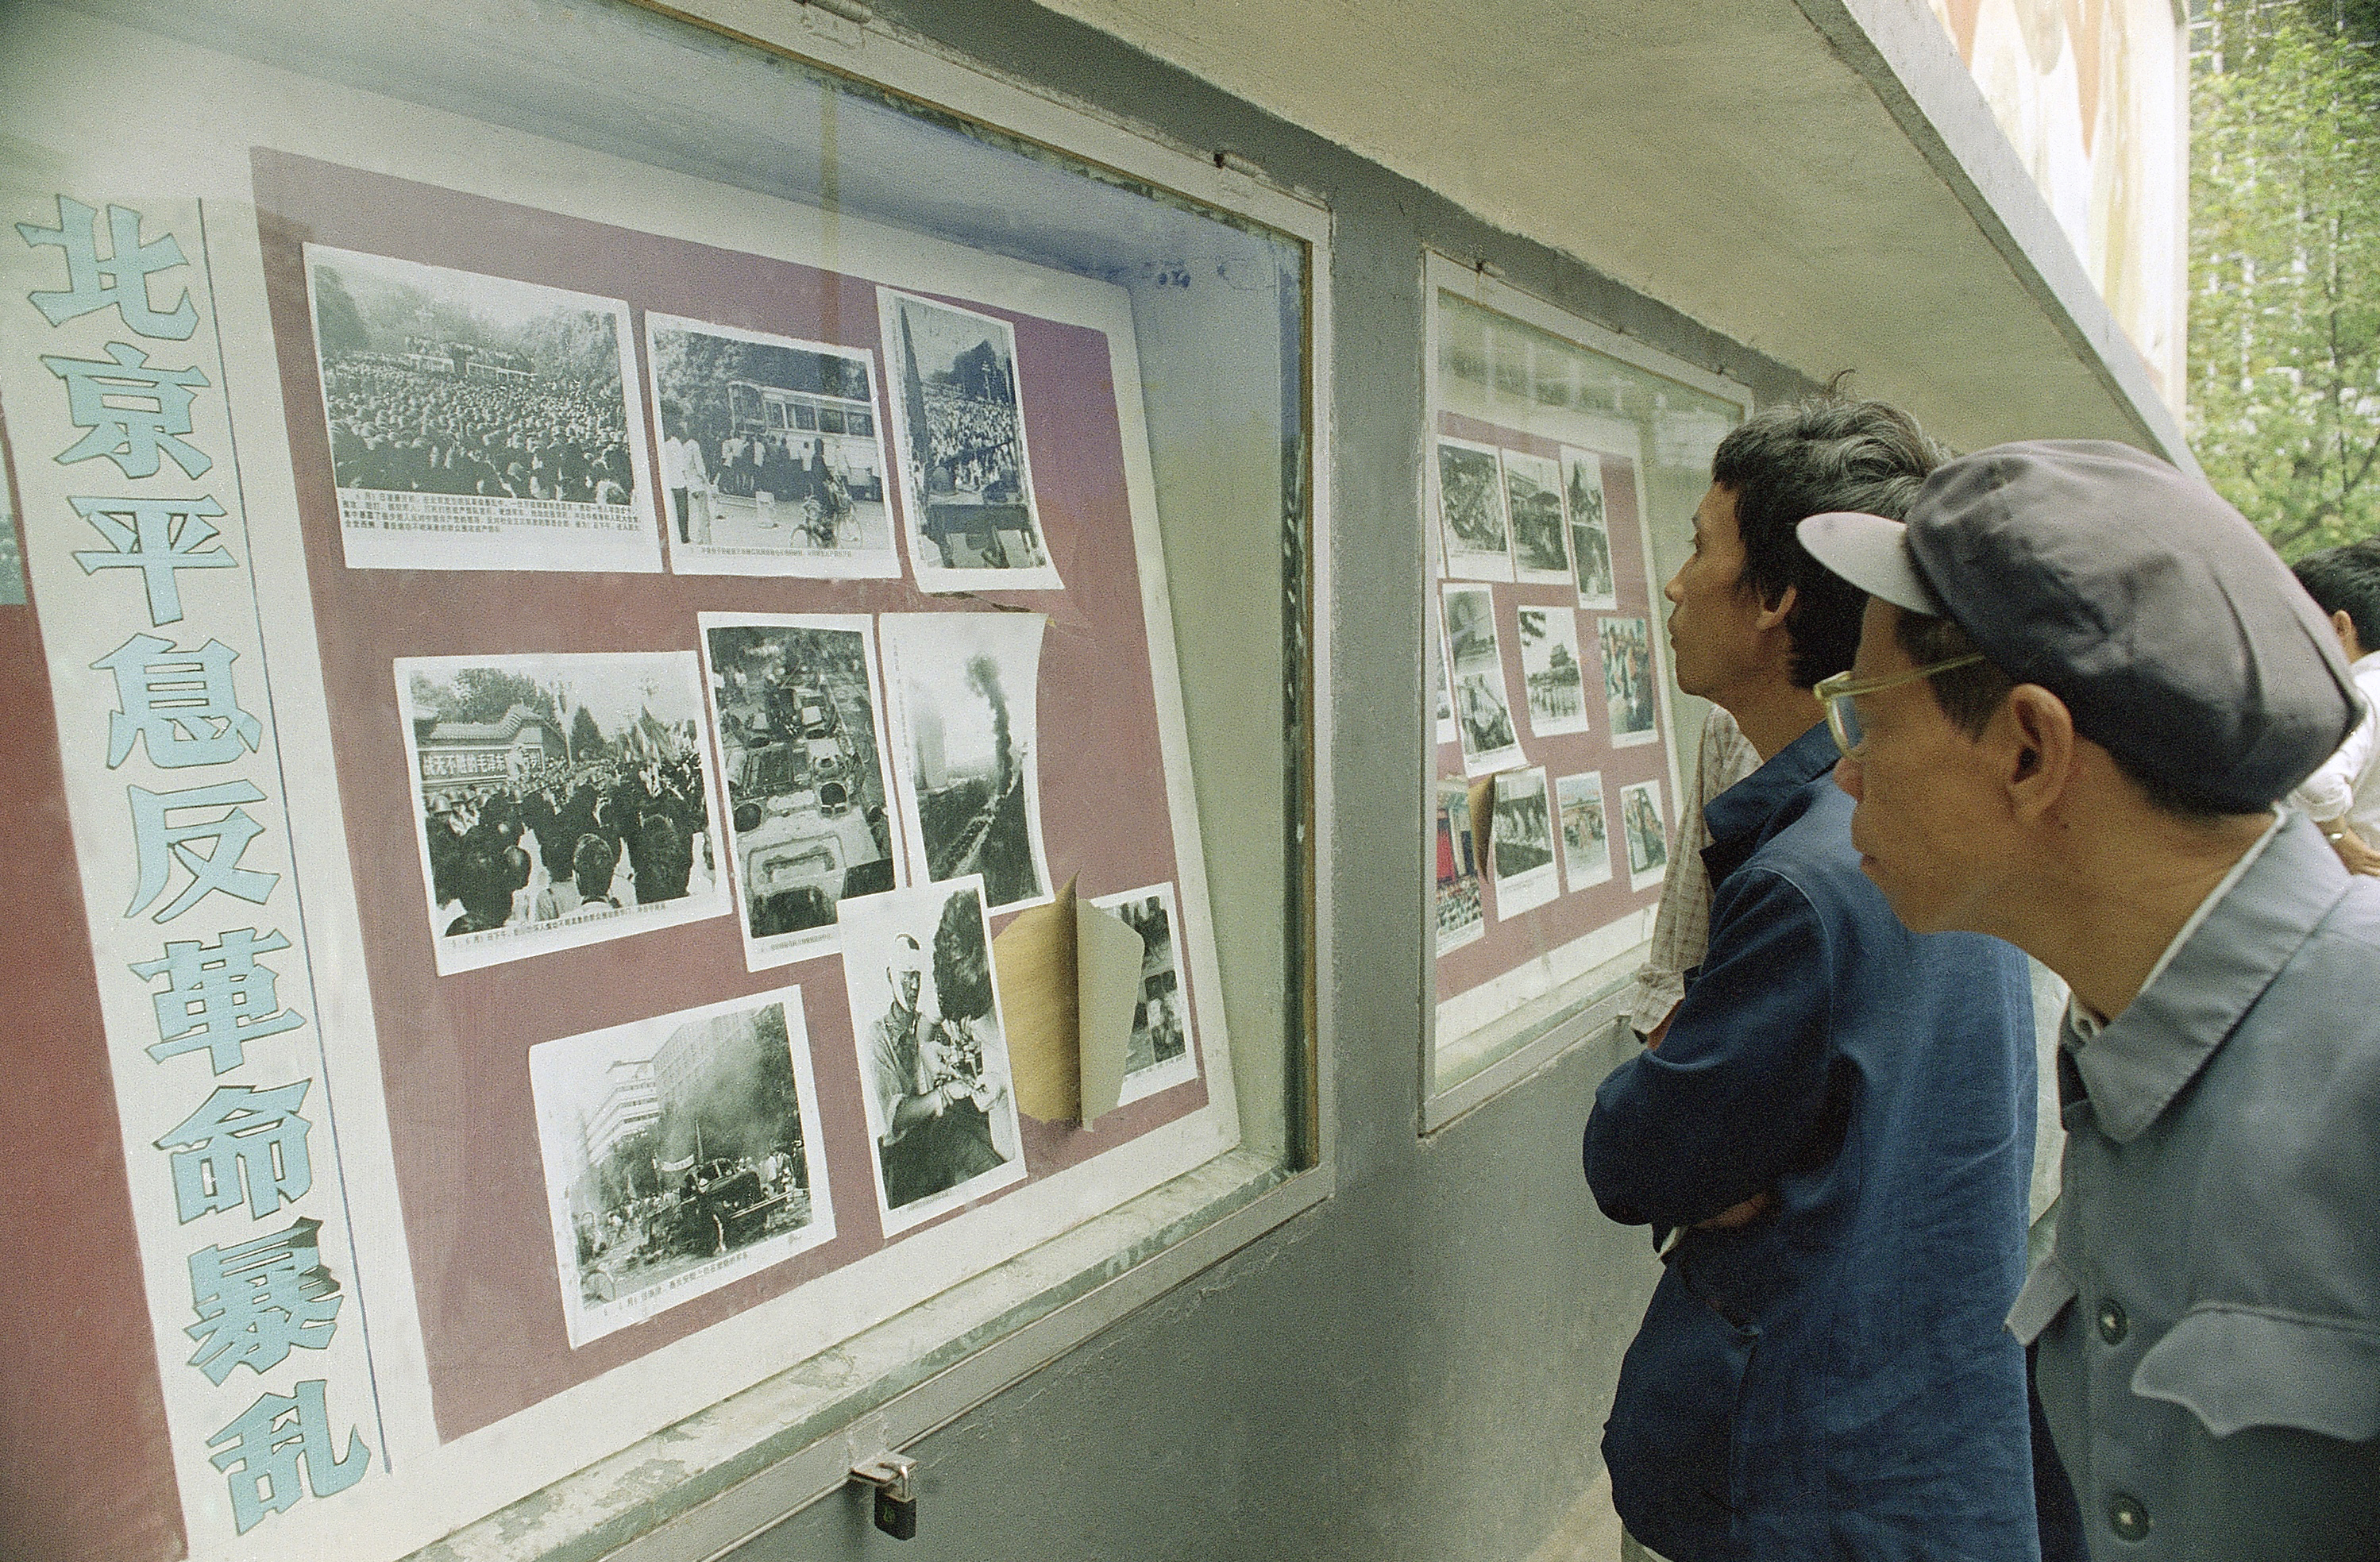 Viewers crowd around an official photo display in Chengdu, Sichuan province, China, on Oct. 30, 1989, that depicts violent battles there in June between police and a crowd angered by the Tiananmen Square killings in Beijing